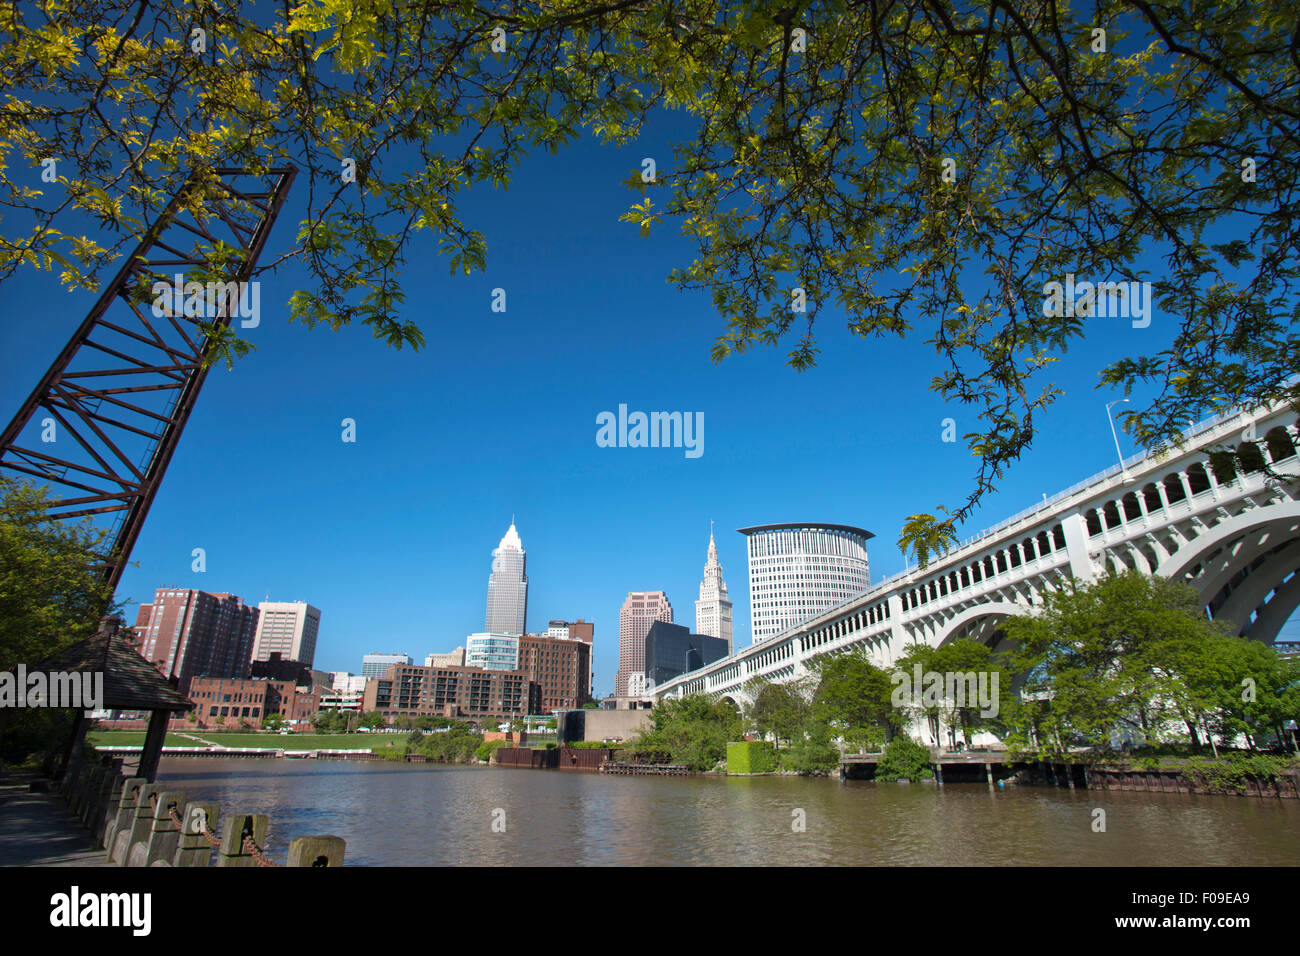 CUYAHOGA RIVER AT SETTLERS LANDING PARK DOWNTOWN SKYLINE CLEVELAND OHIO USA - Stock Image